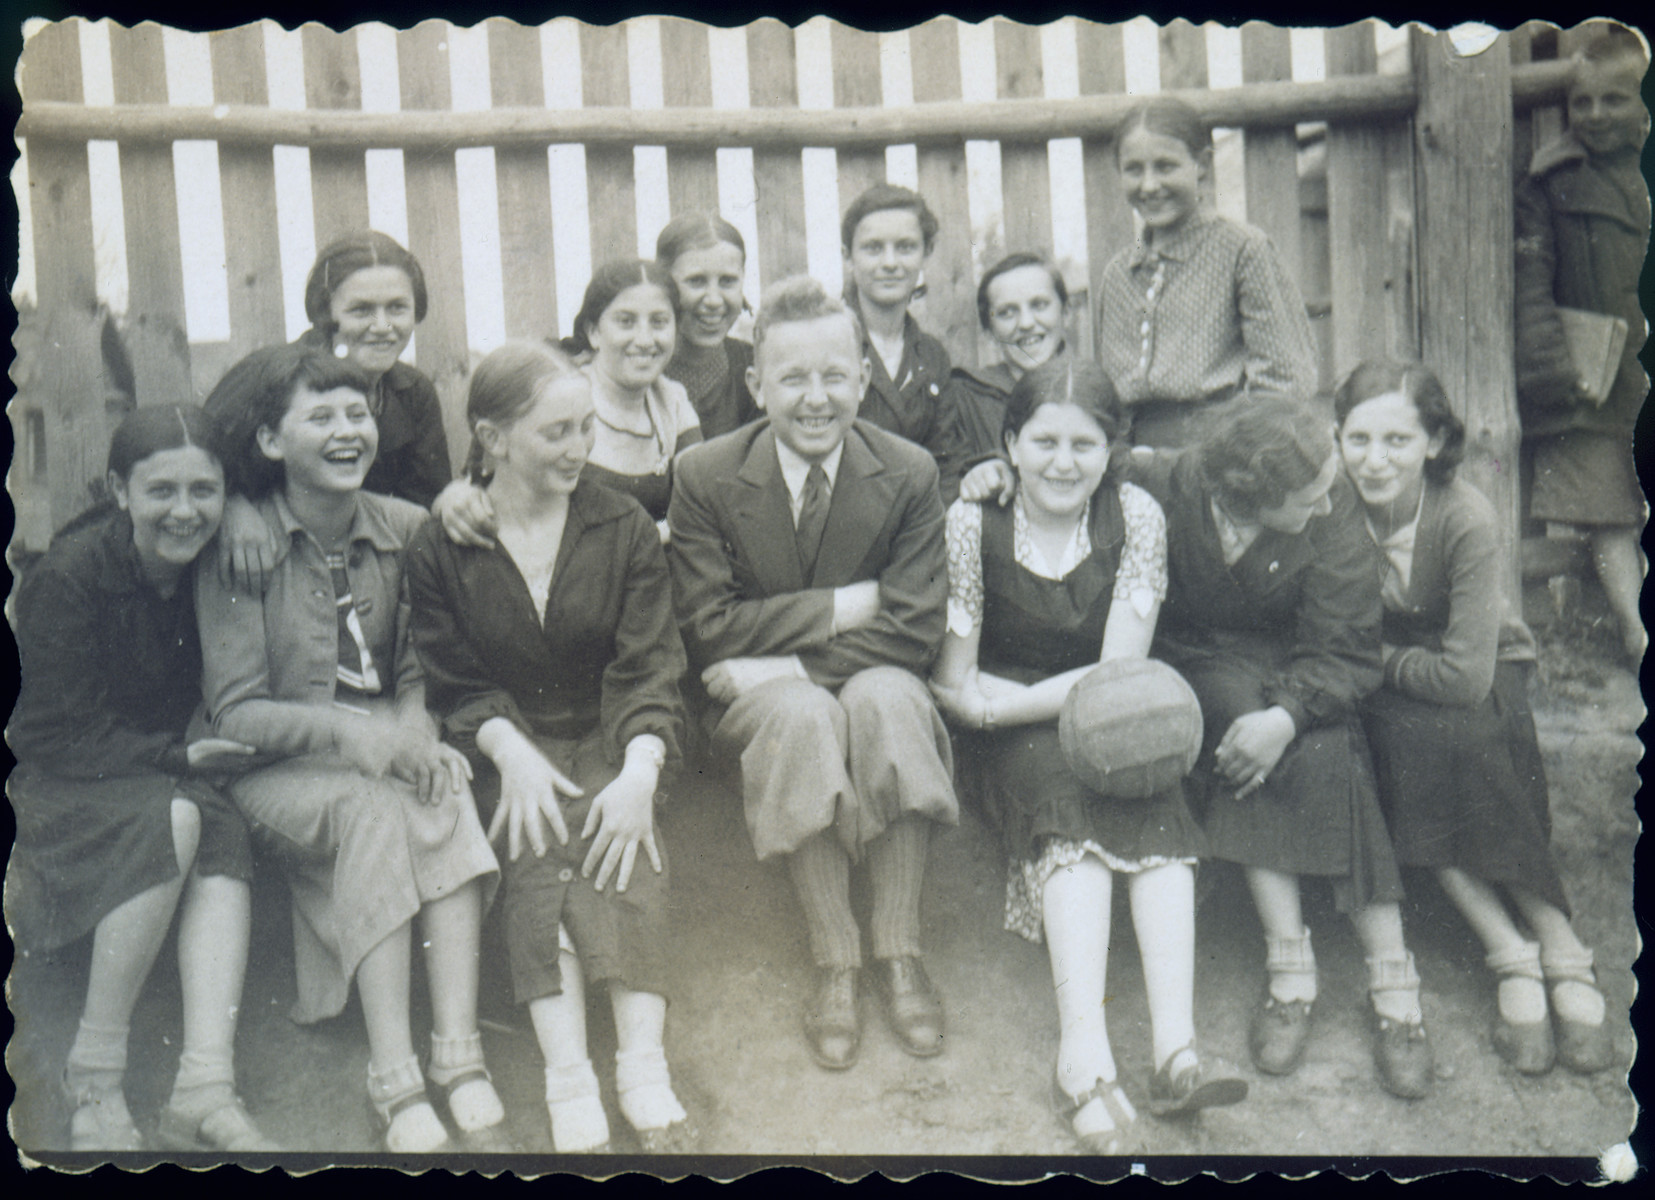 Group portrait of students in a physical education class at a Polish secondary school.    Among those pictured are: Chaya Szepsenwol (front row holding a volleyball); Fejga Szepsenwol (back row, second from the left); and Gala Rogovin (front row, third from the left).